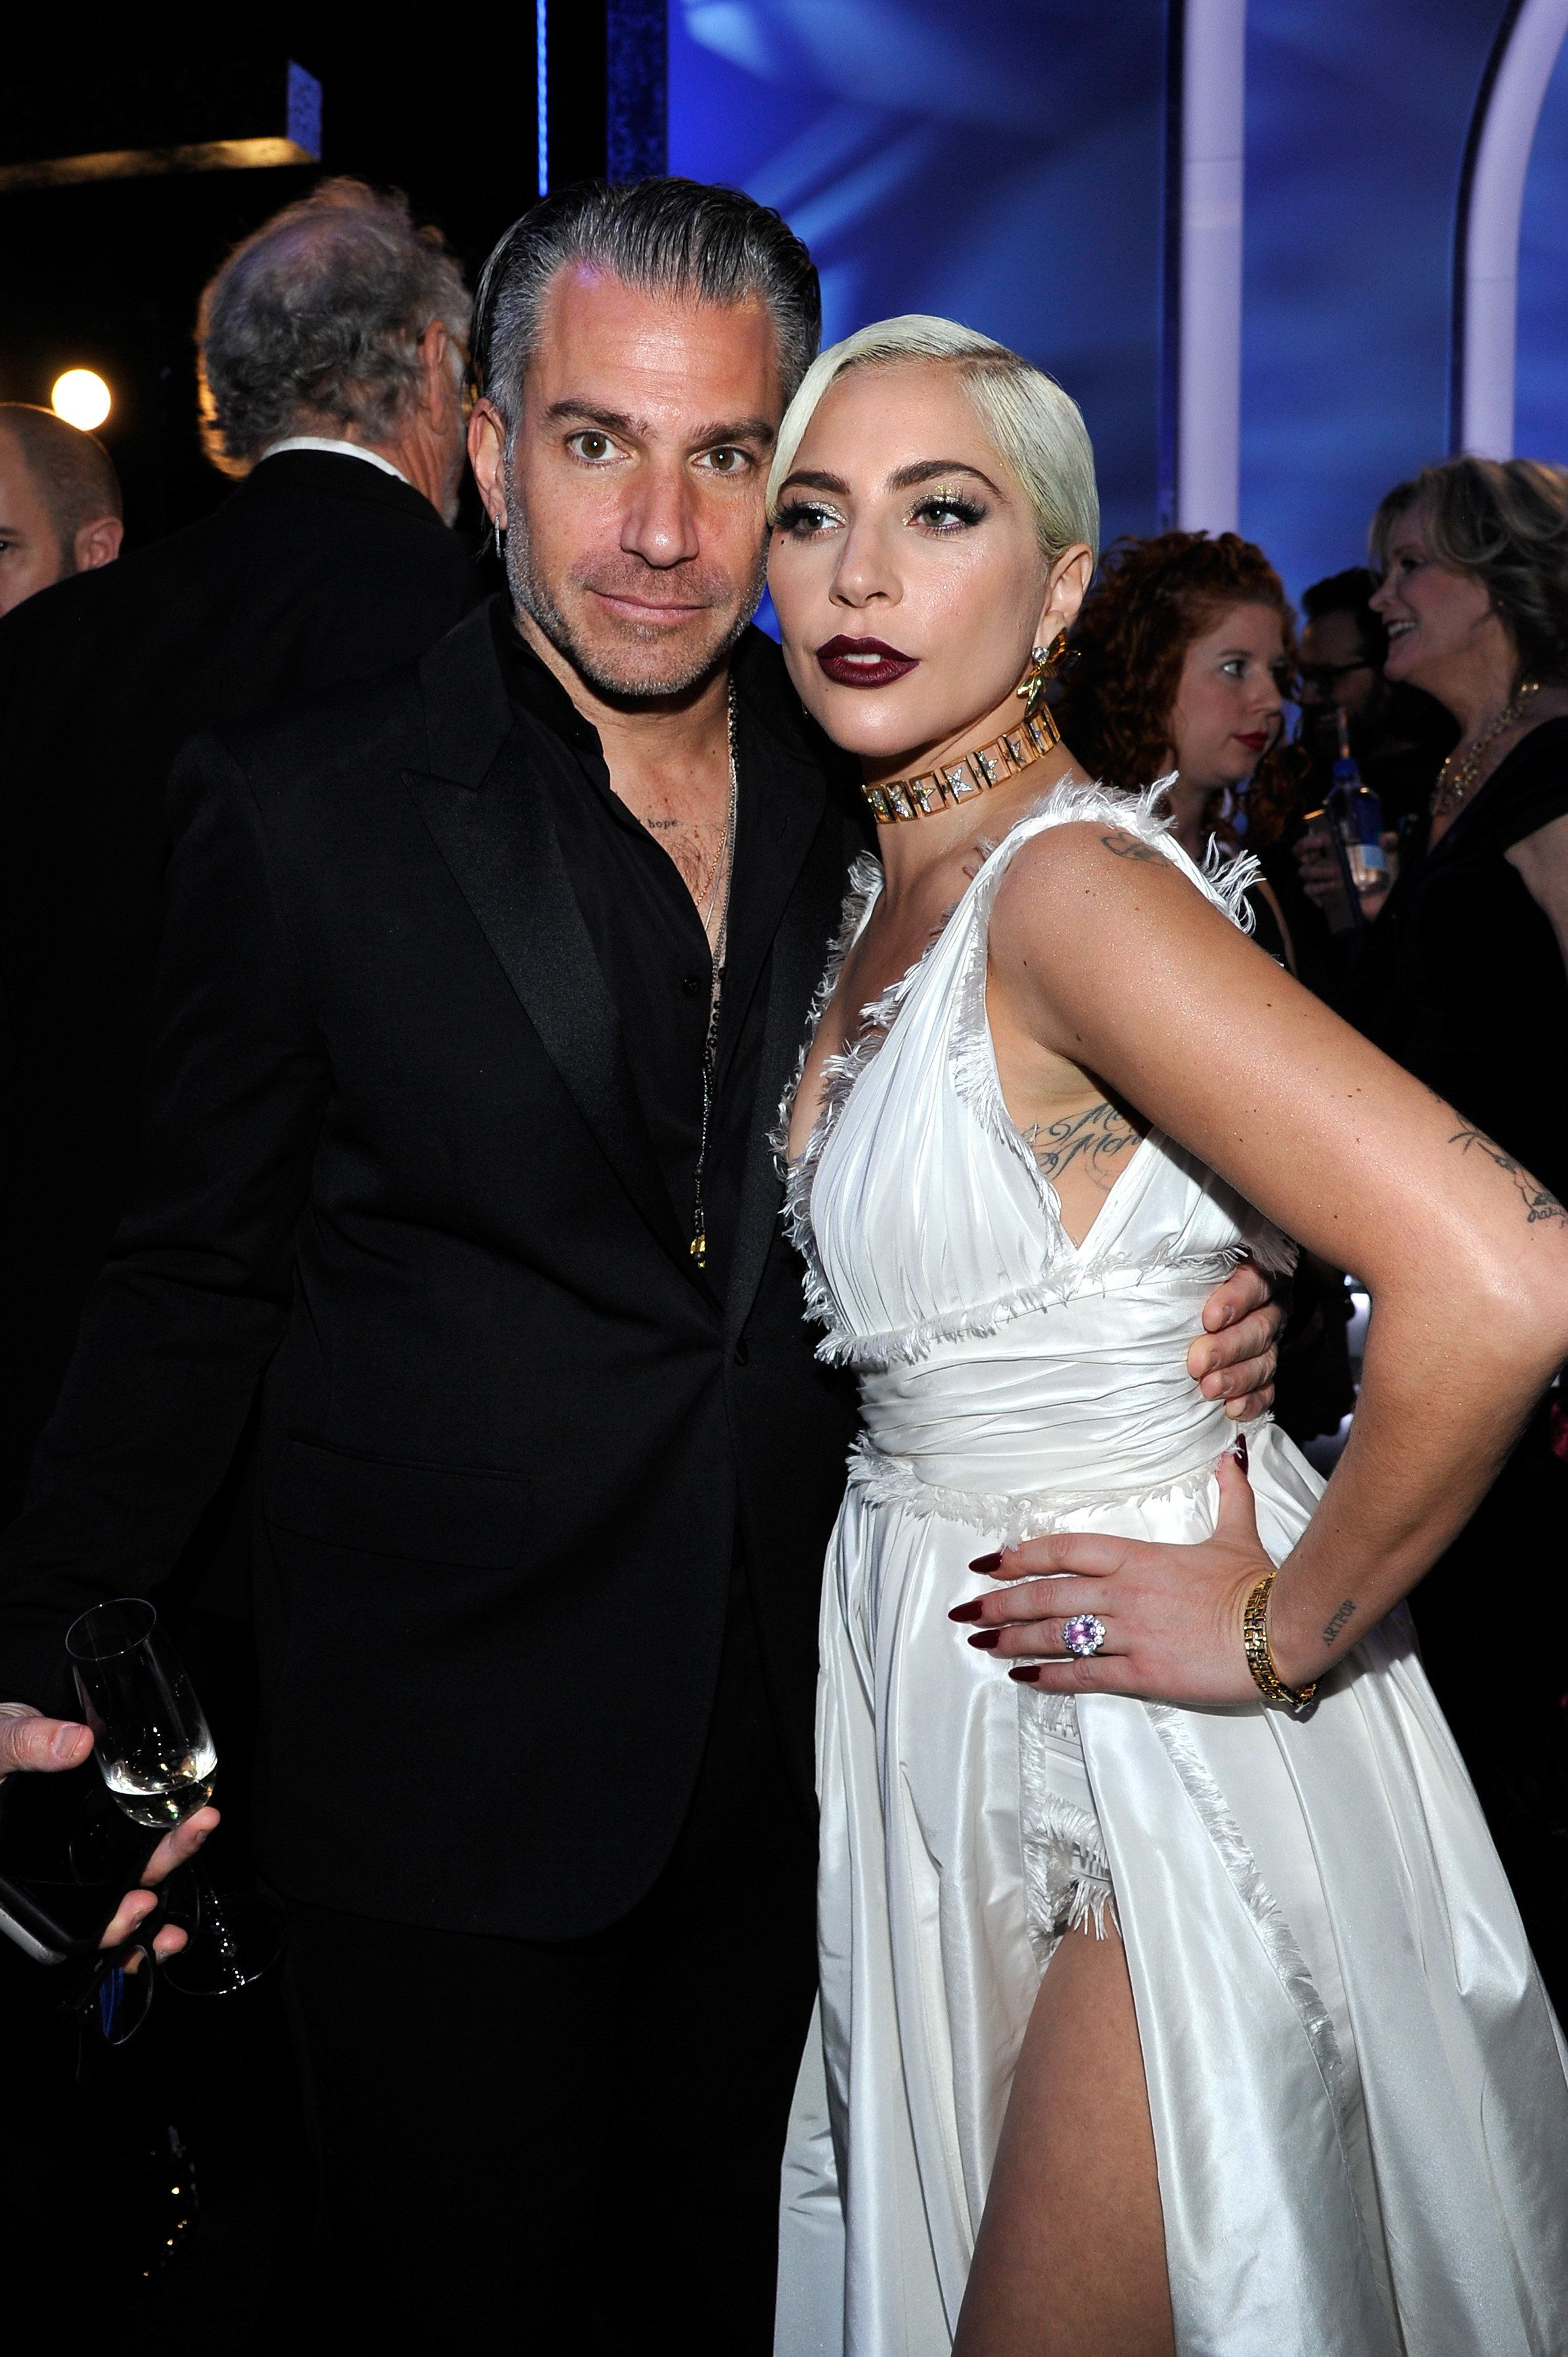 LOS ANGELES, CA - JANUARY 27:  Christian Carino (L) and Lady Gaga attend the 25th Annual Screen Actors Guild Awards at The Shrine Auditorium on January 27, 2019 in Los Angeles, California. 480720  (Photo by John Sciulli/Getty Images for Turner)